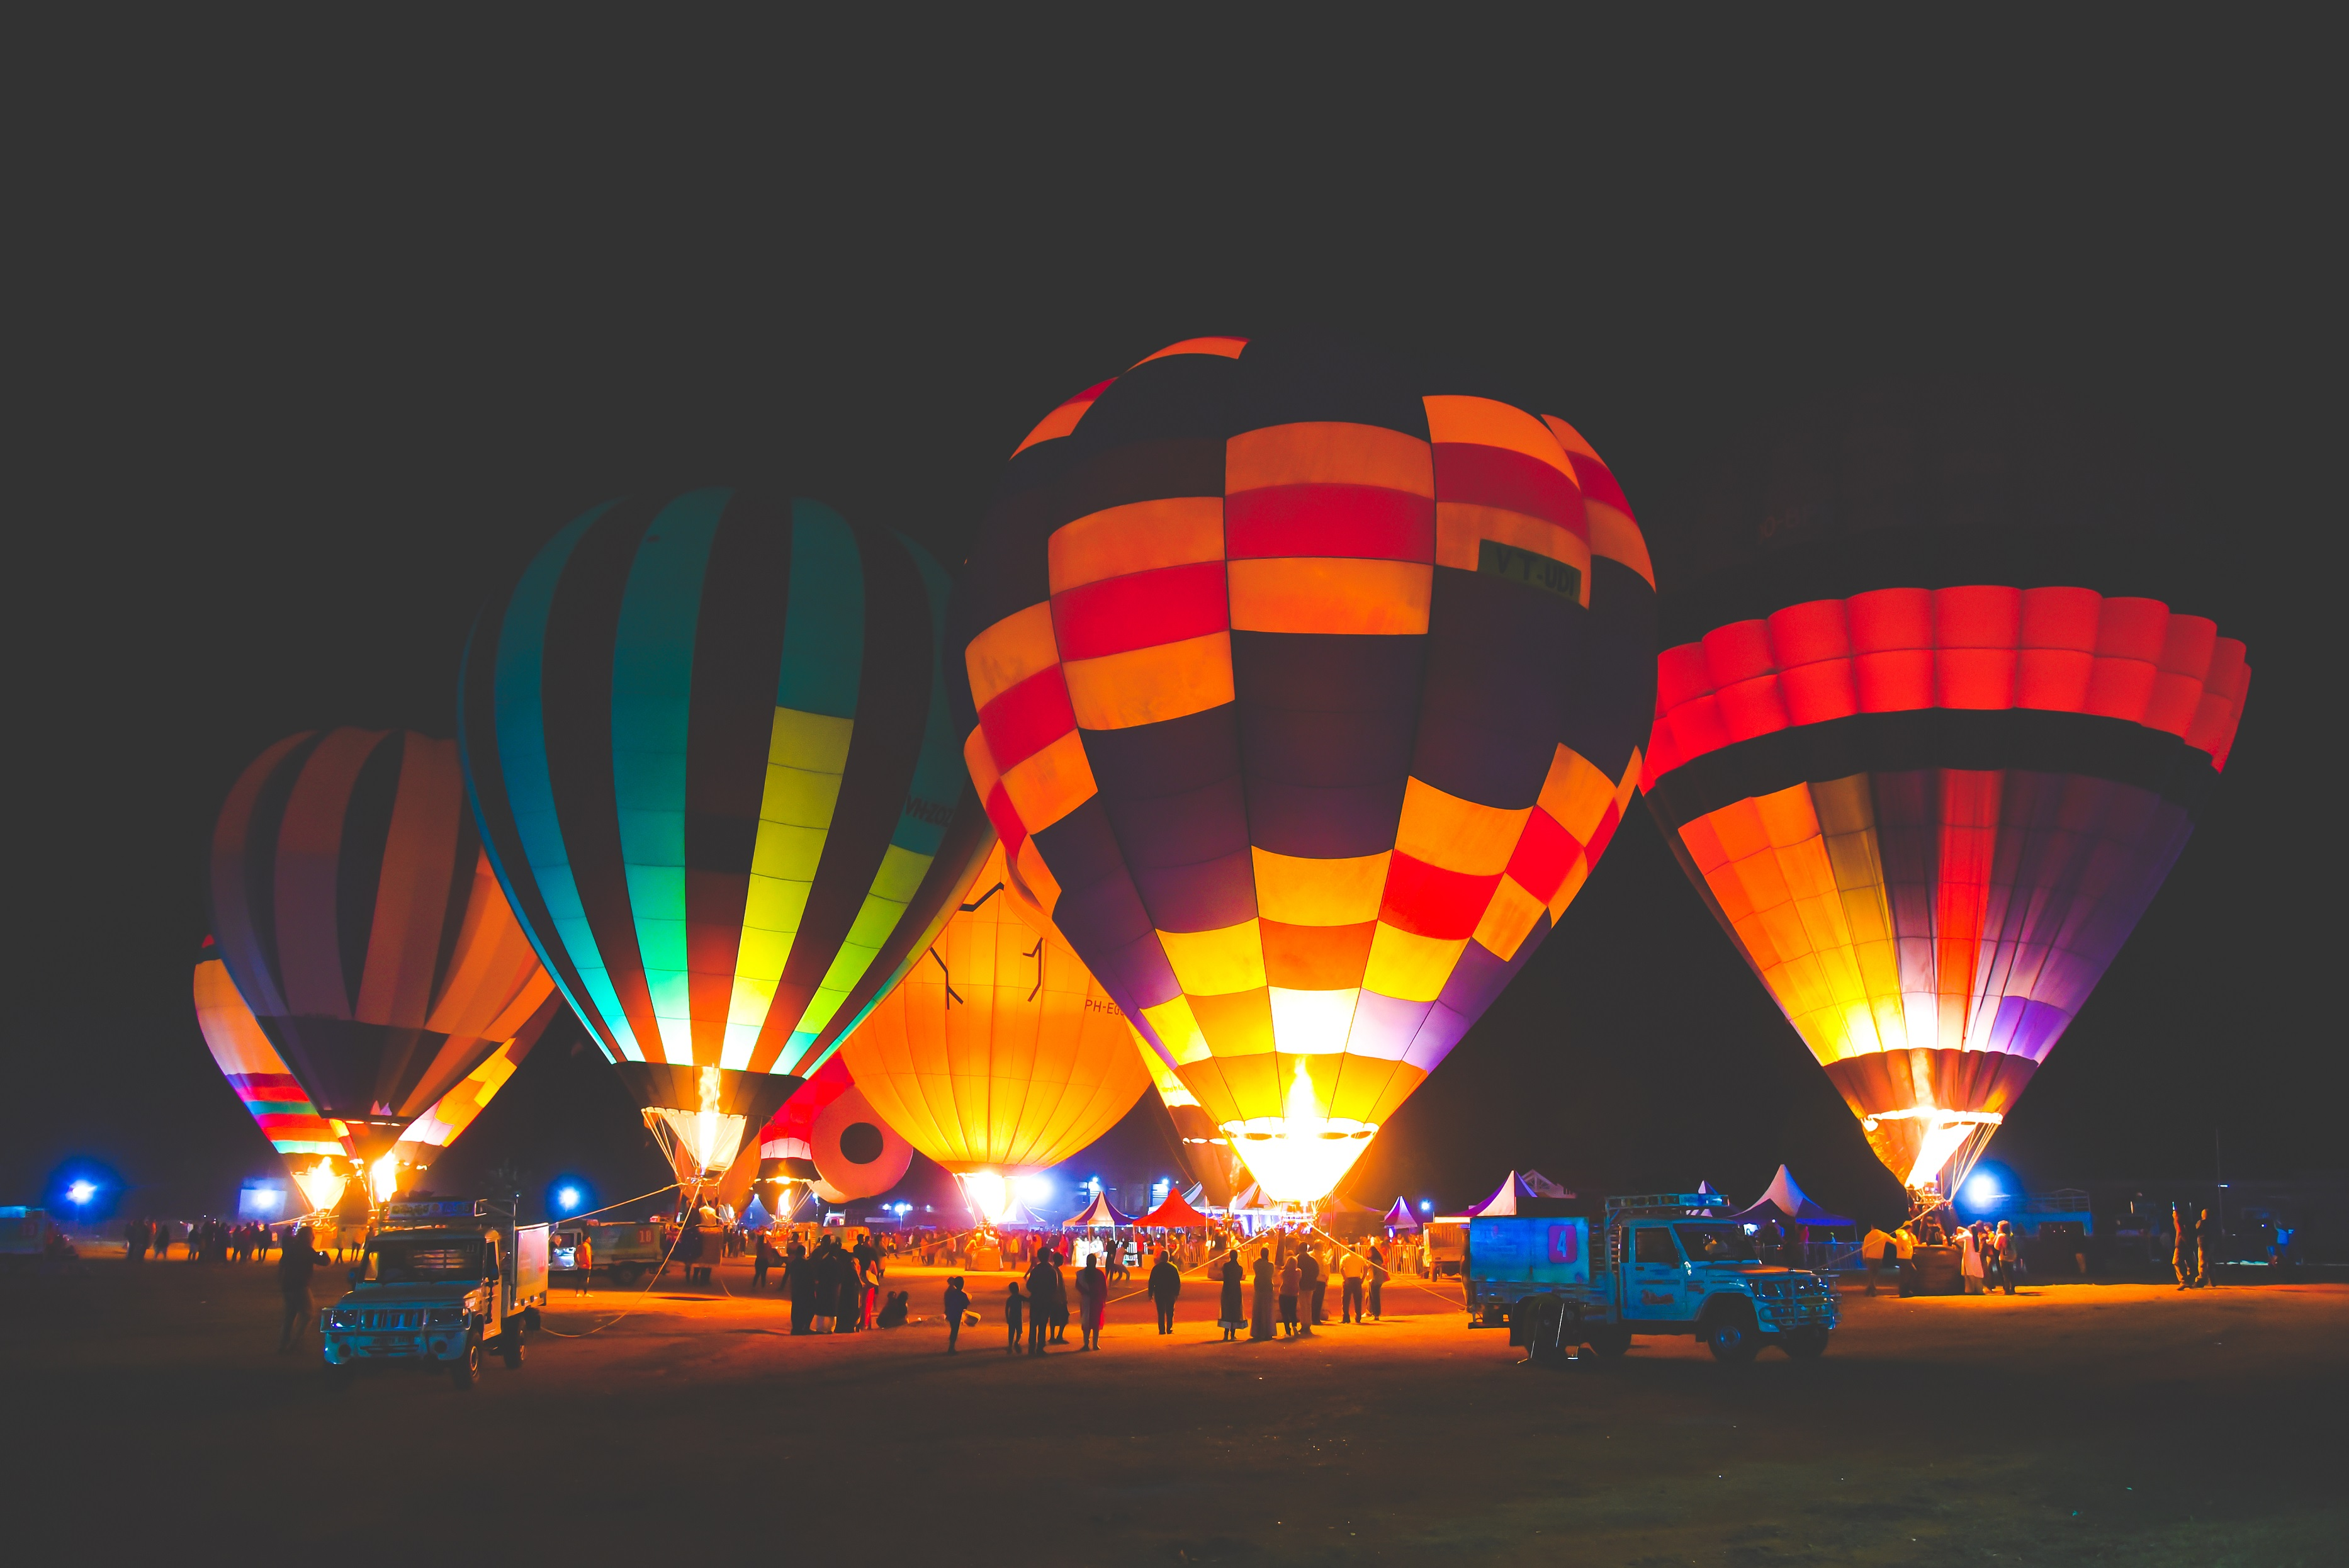 The Megahlayan Age Fest Hot air Balloon Ride